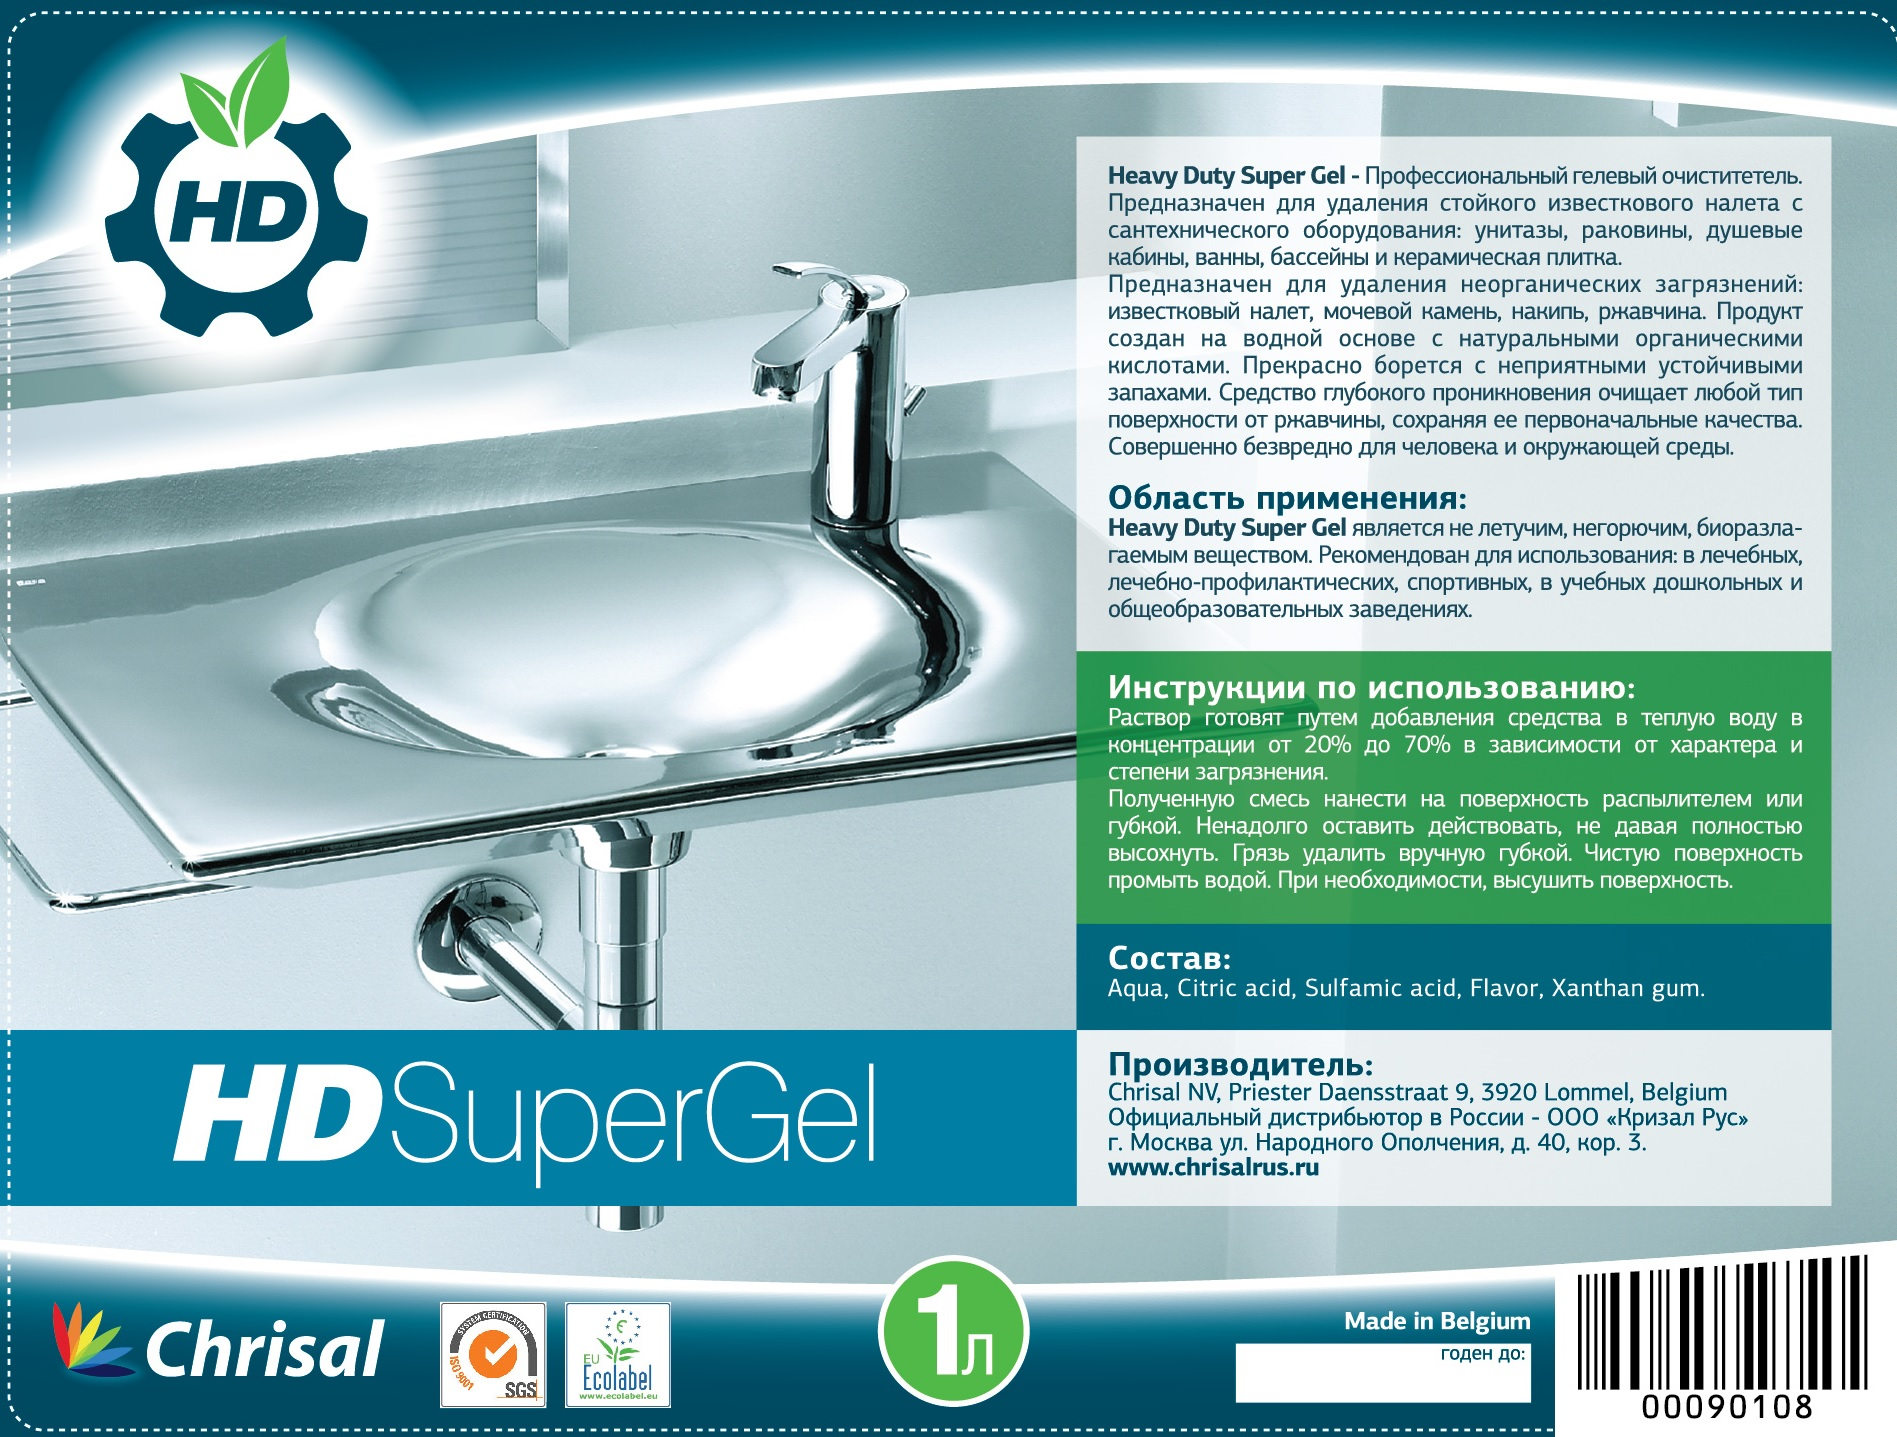 HD Super gel